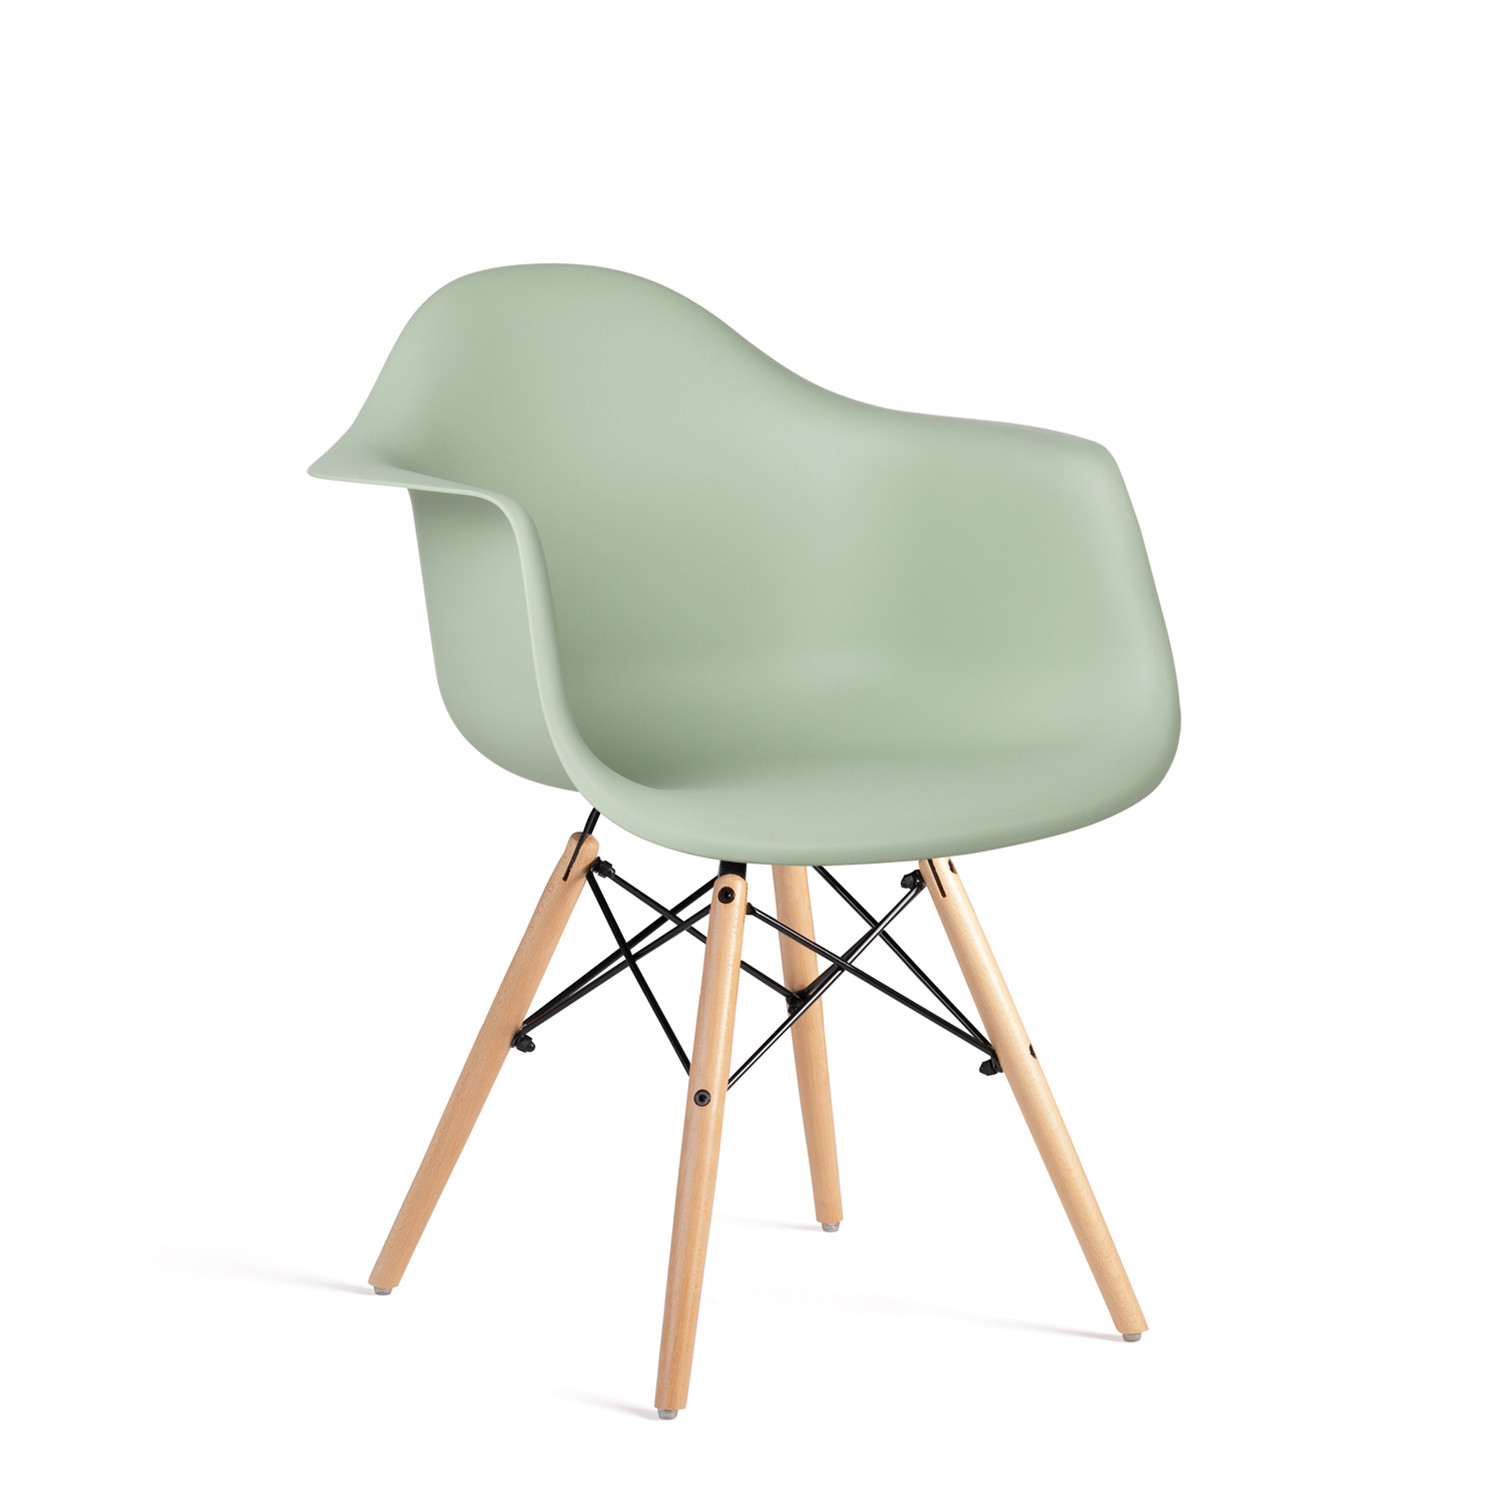 Chaise avec accoudoirs Scand